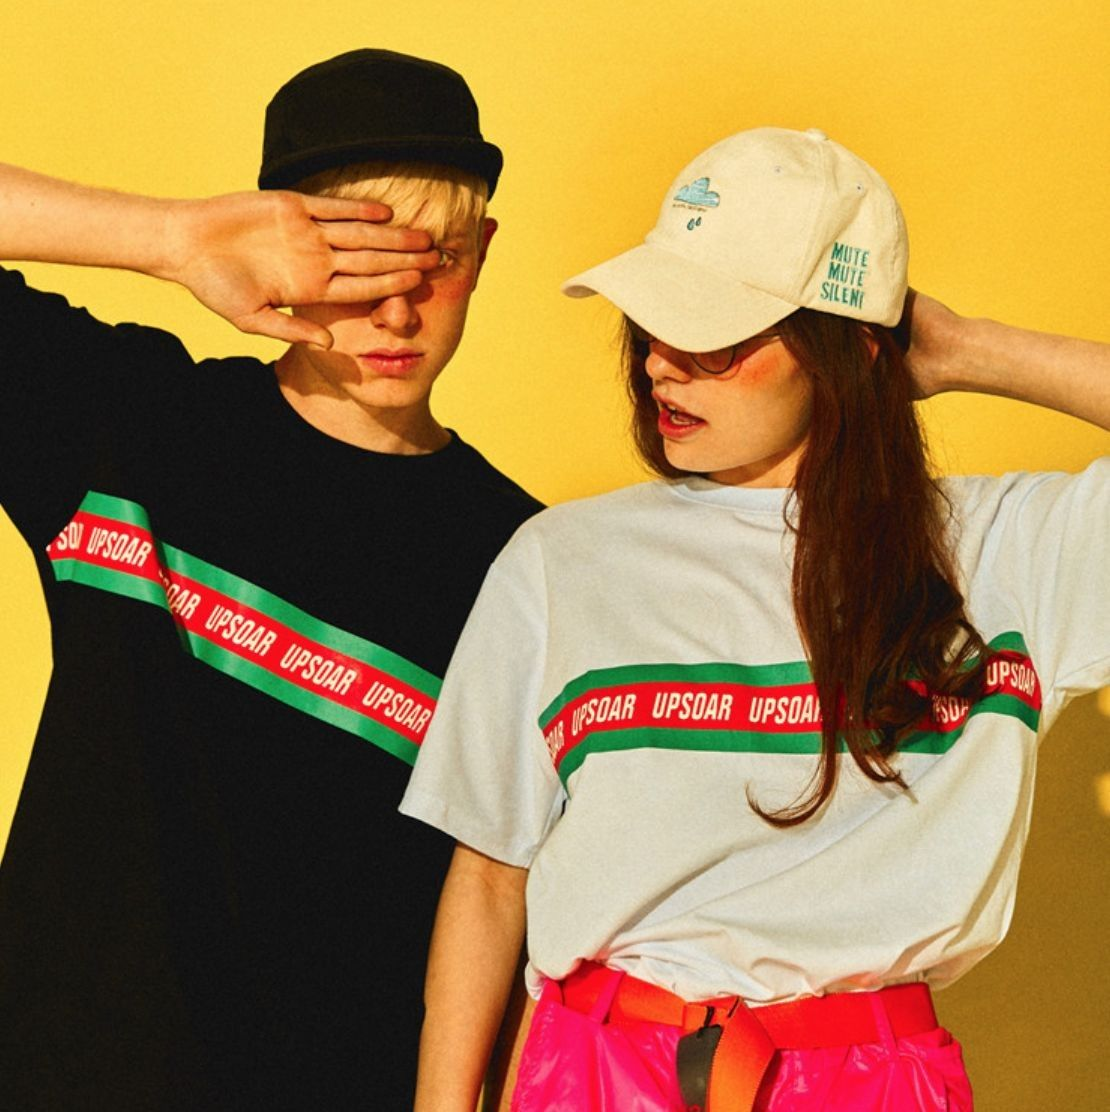 Streetwear Is A Style Of Casual Clothing Which Became Global In The 1990s It Grew From California Surf In 2020 Streetwear Lookbook Harajuku Fashion Street Street Wear